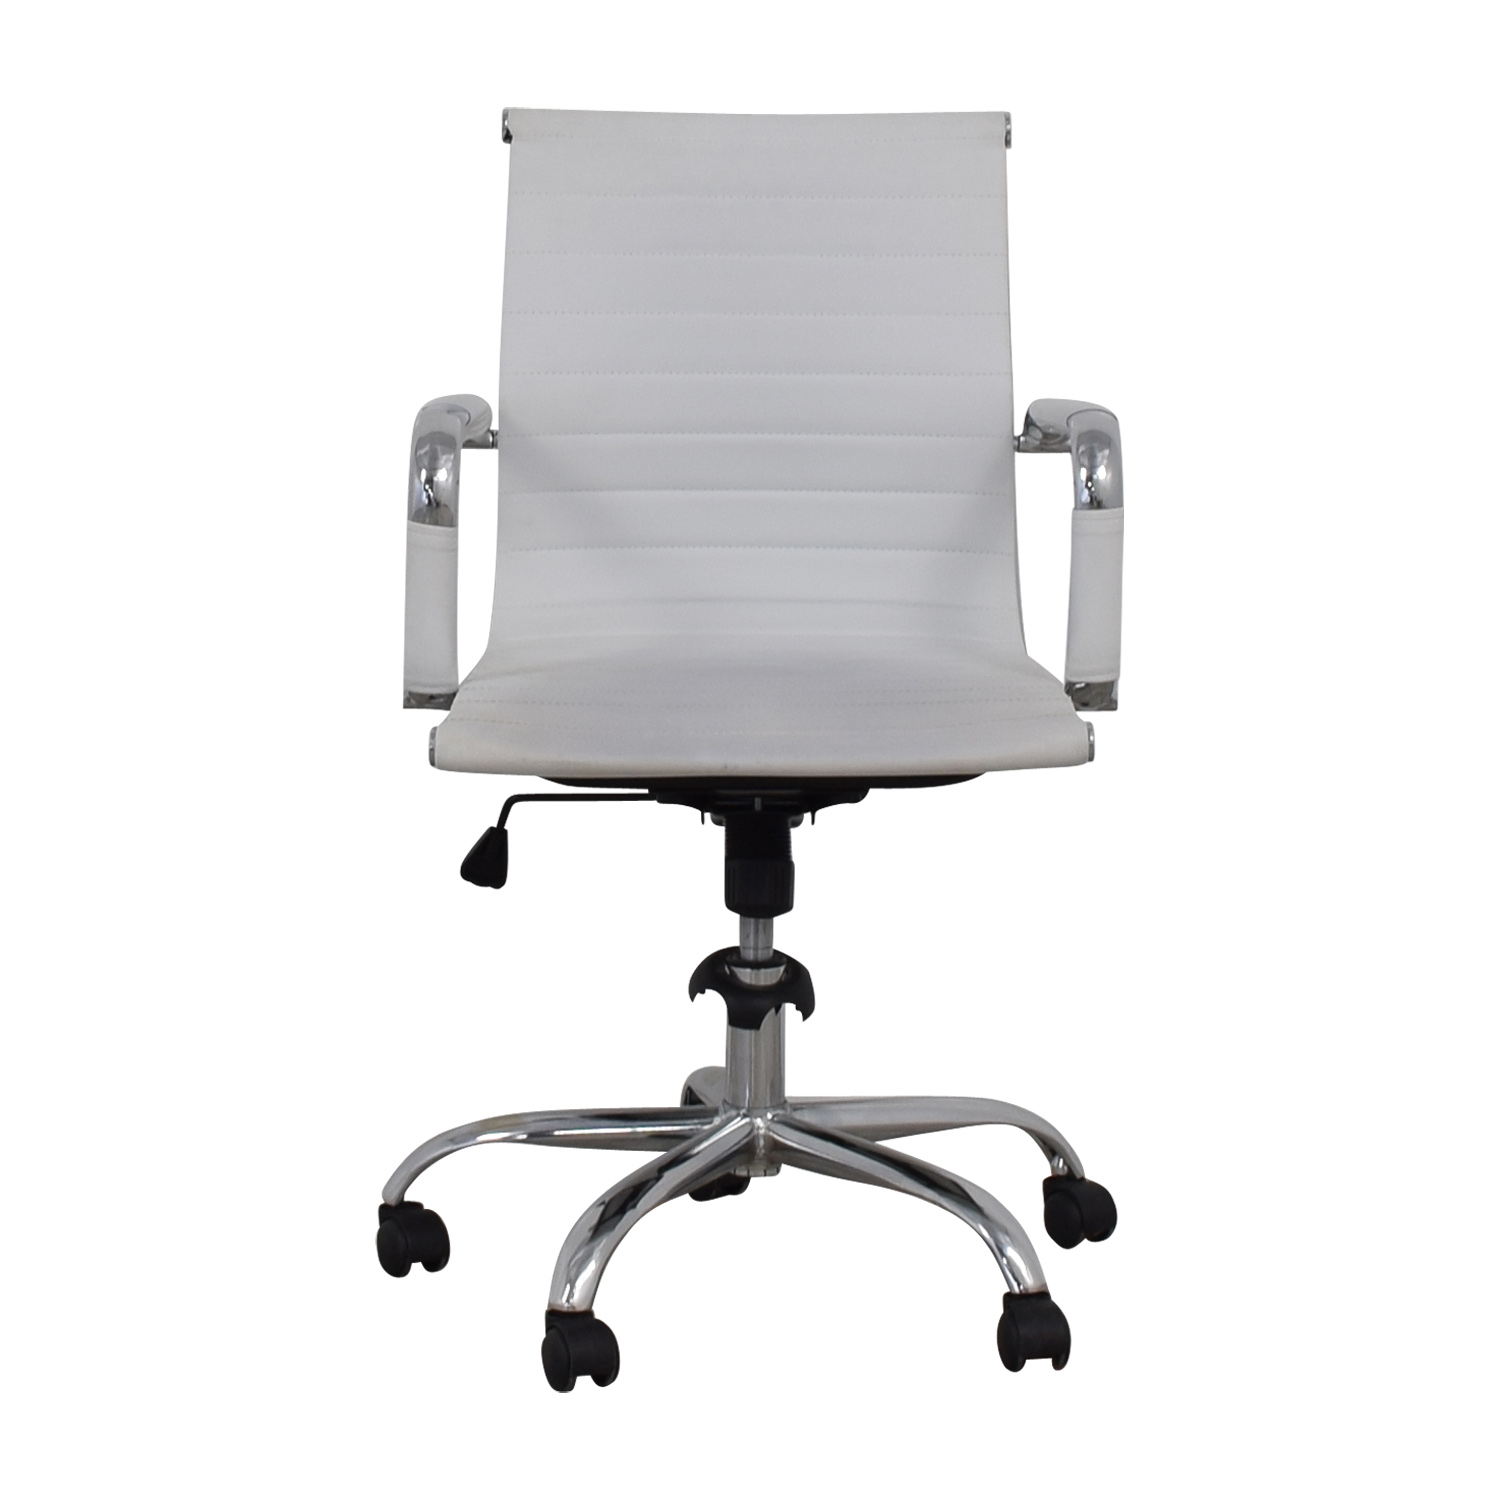 Wayfair Wayfair Alessandro Desk Chair for sale